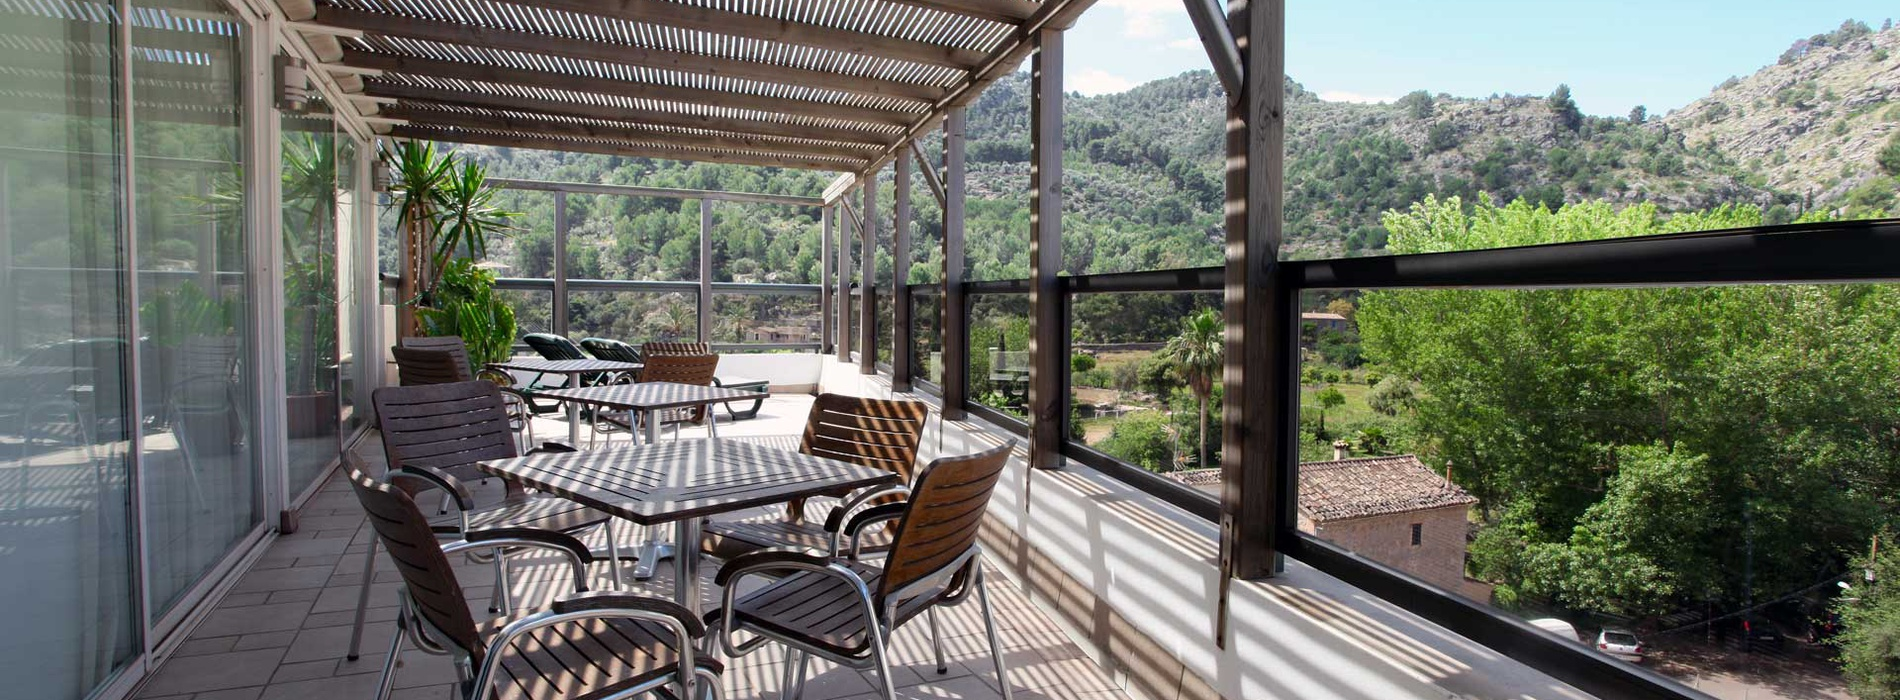 Hotel with pool in Soller